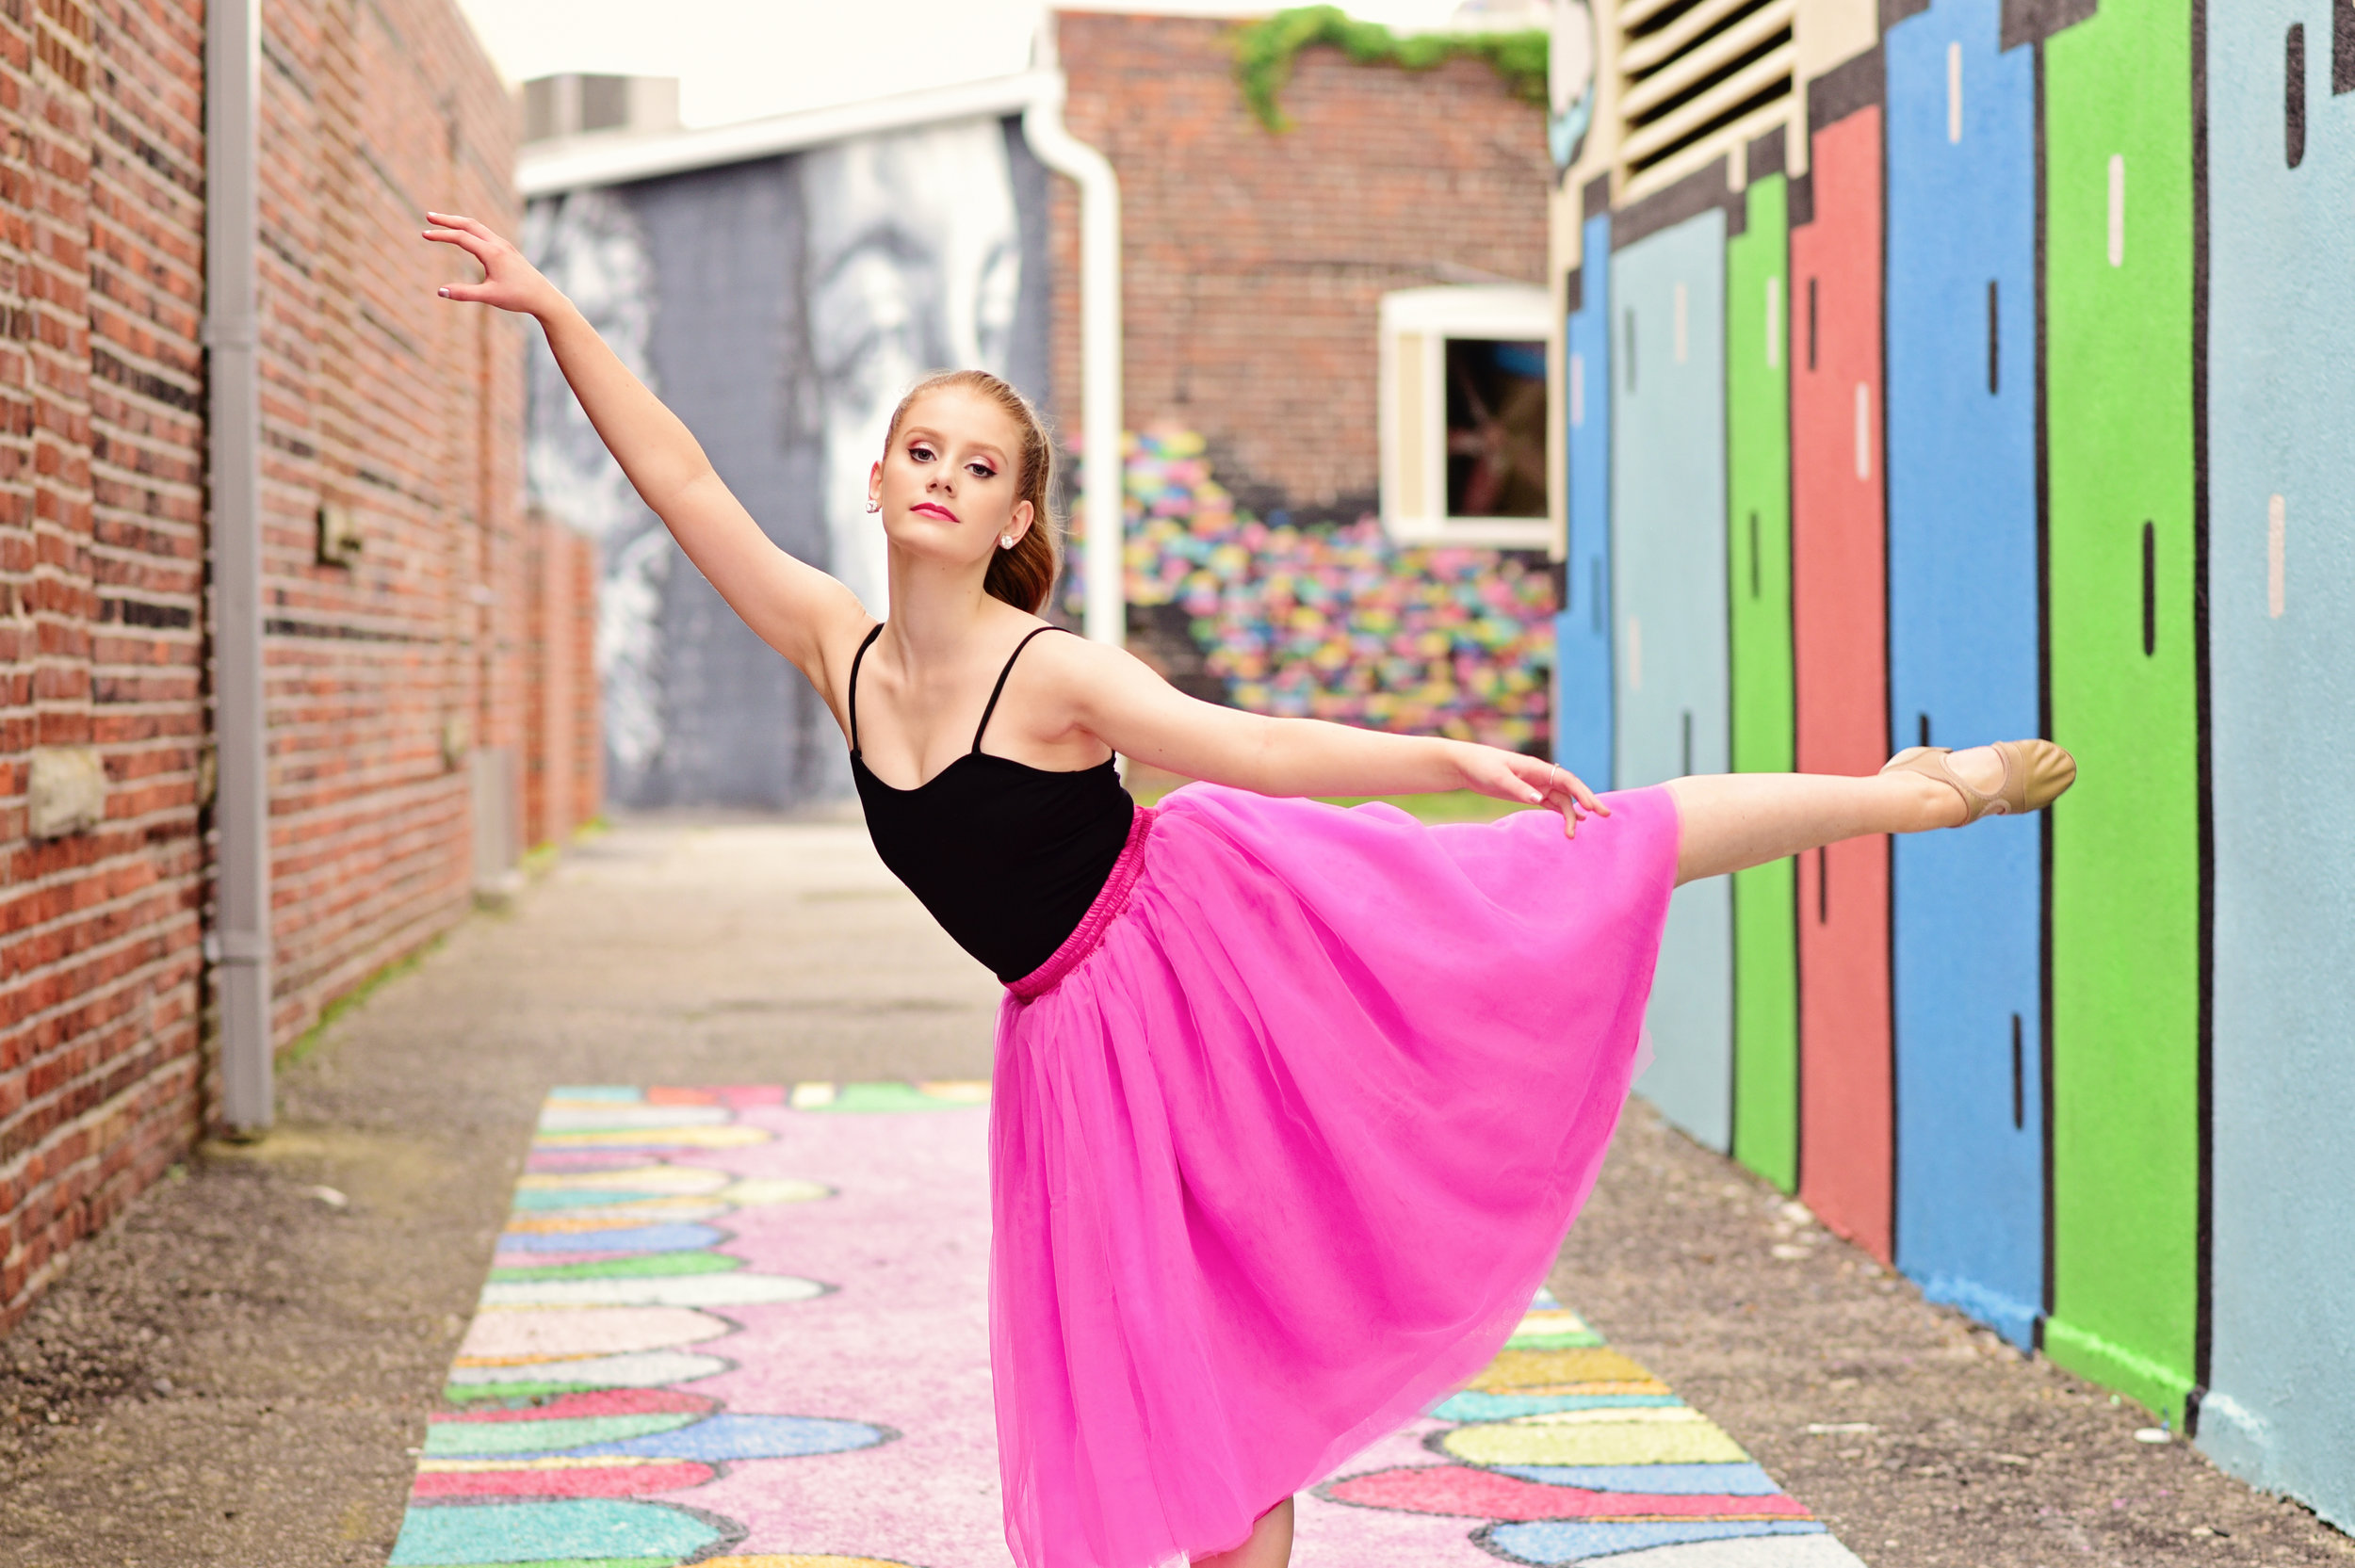 neon arts district Norfolk dance portrait Jan Casper Photography Virginia